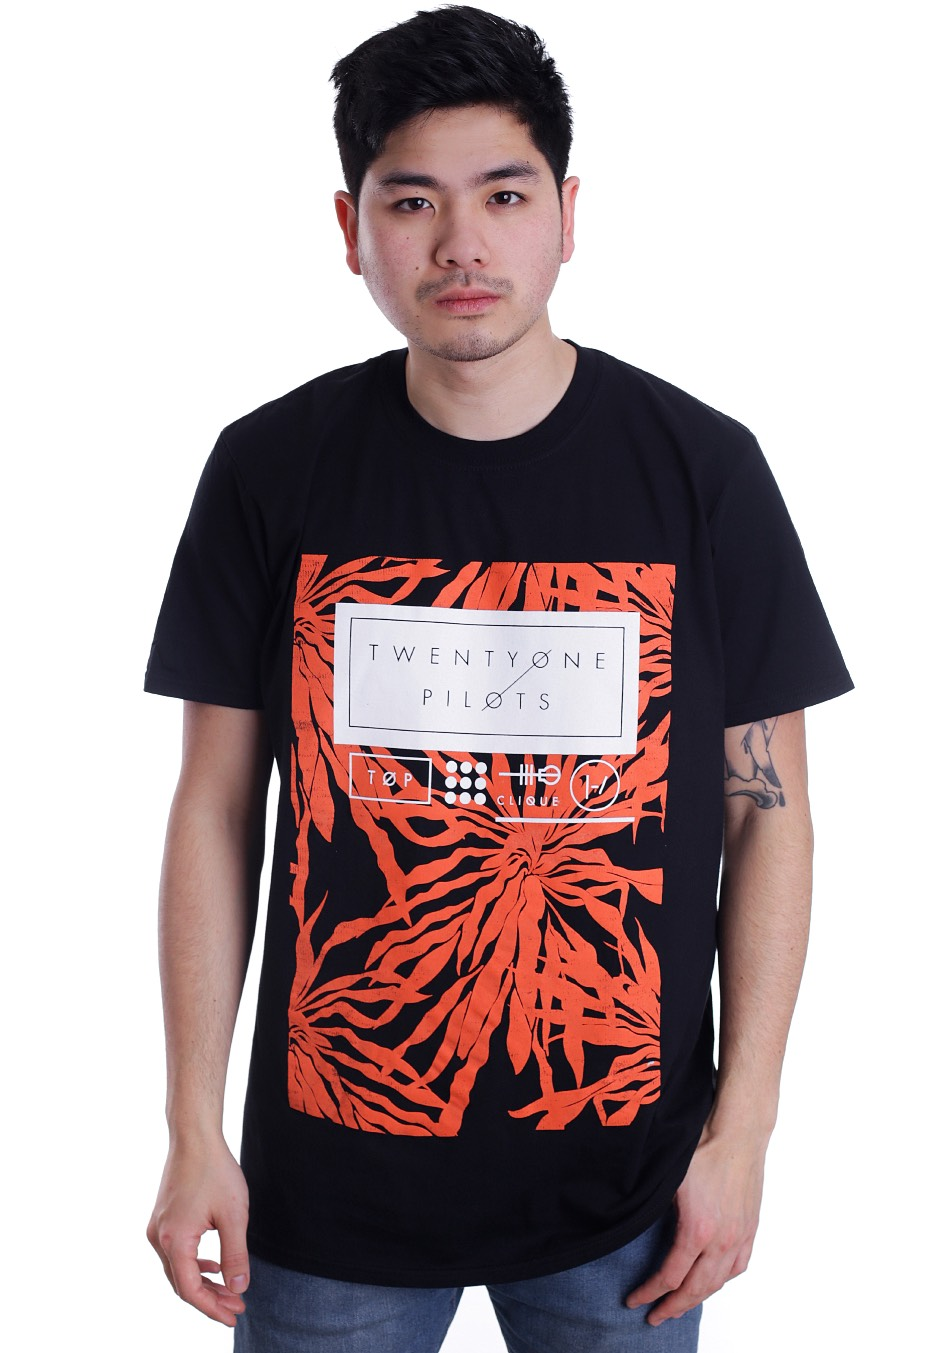 Twenty one pilots ride board t shirt official for Twenty one pilots